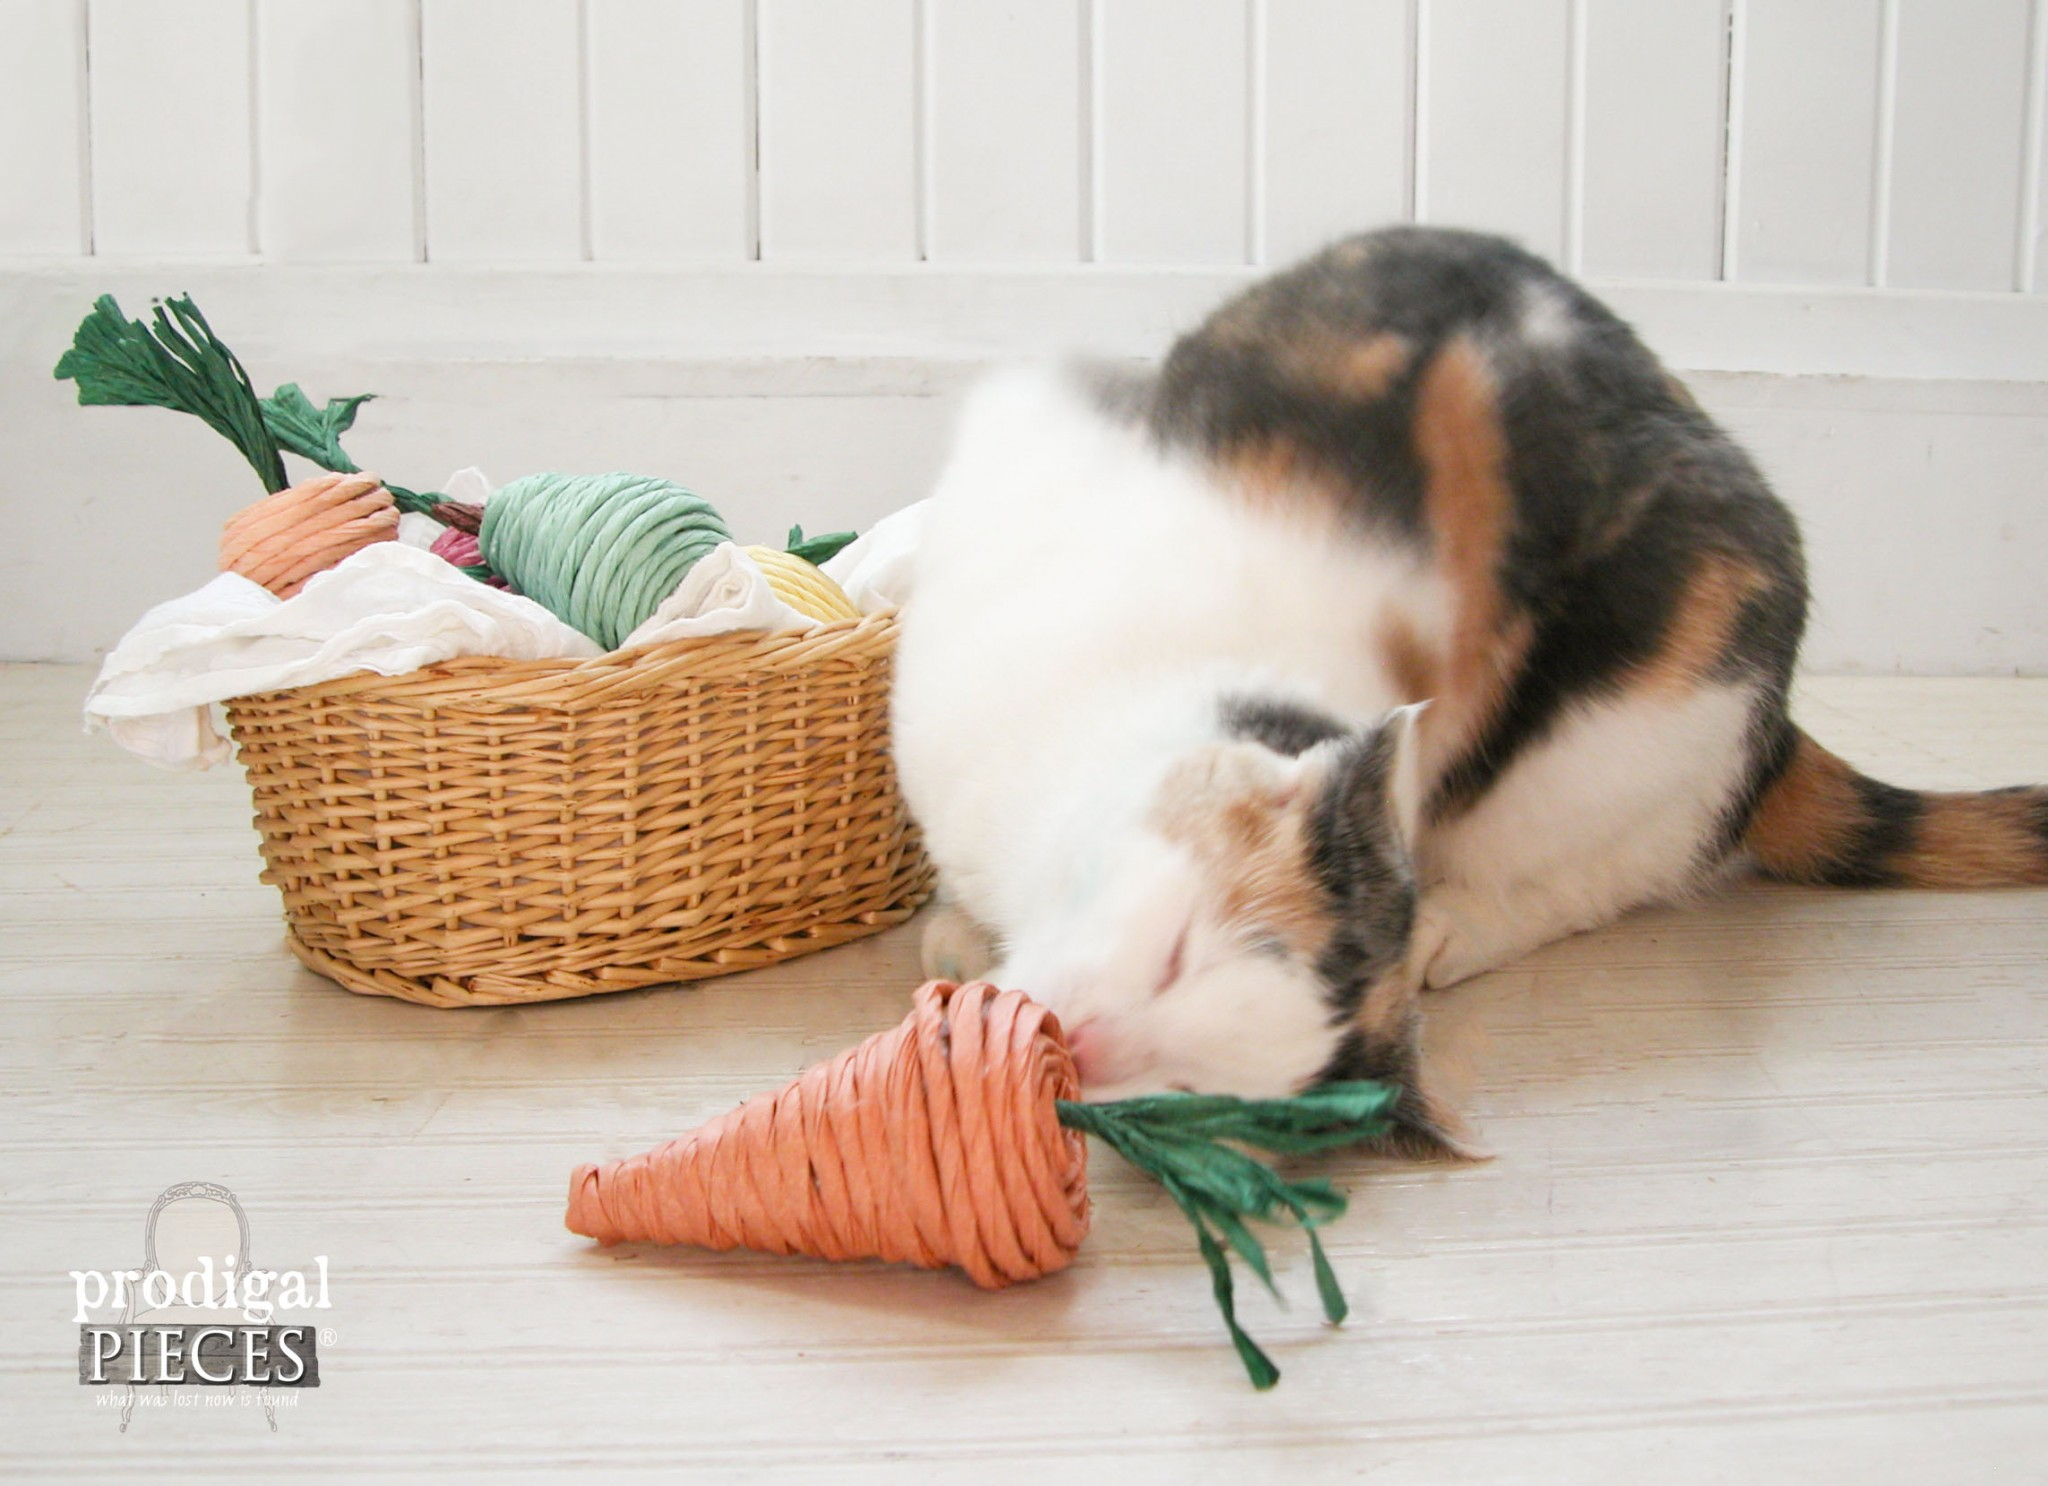 Calico Cat Playing with DIY Natural Cat Toys by Prodigal Pieces | www.prodigalpieces.com